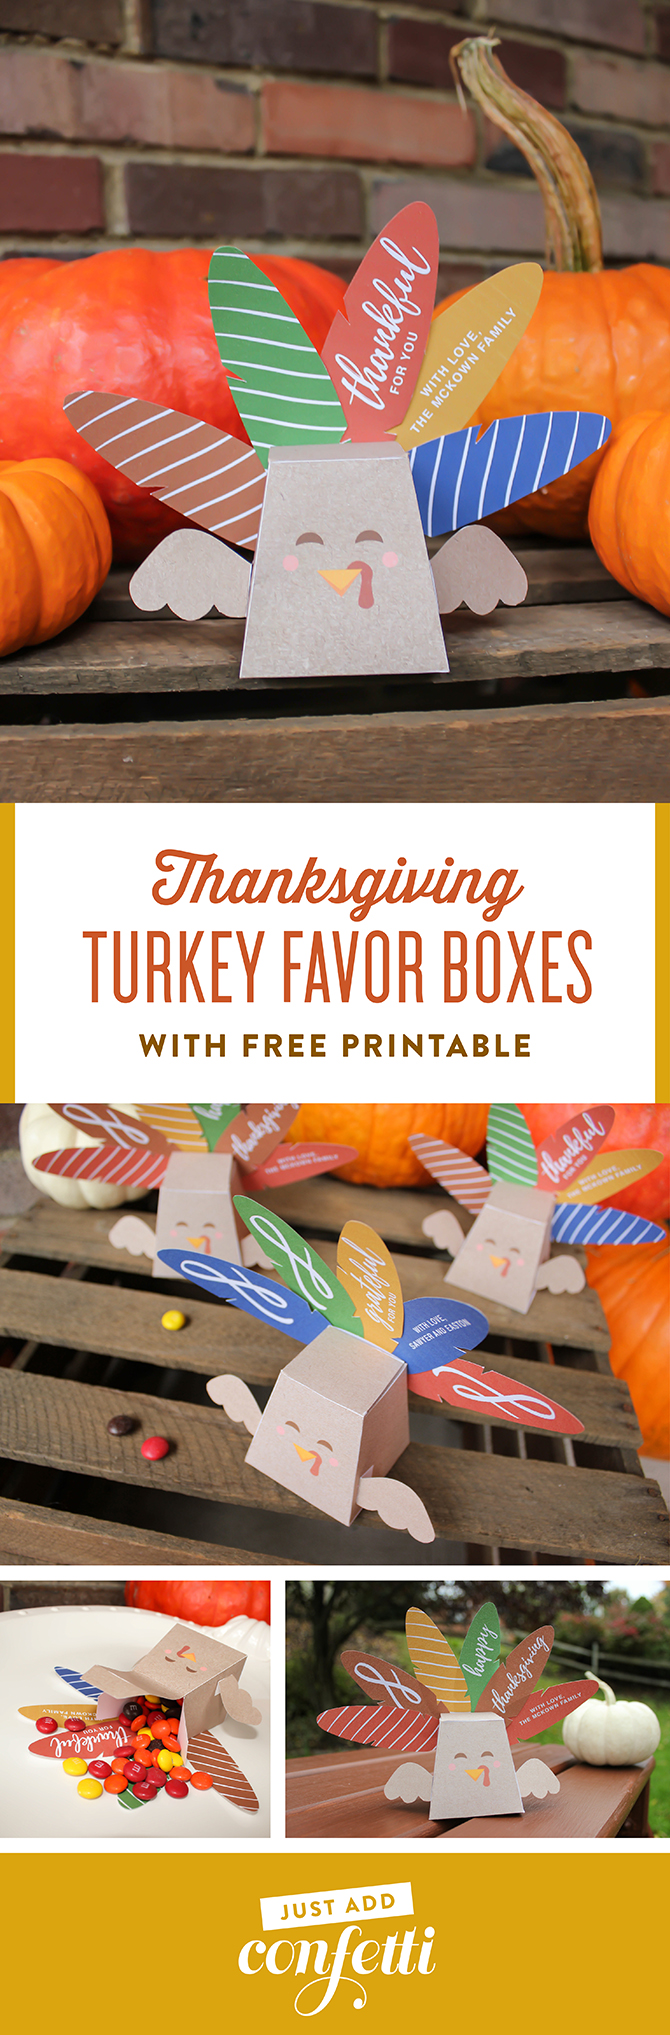 Turkey favor box, turkey favor box free printable, Thanksgiving favor box, Thanksgiving turkey favor box, thanksgiving, thankful for you, happy thanksgiving, thanksgiving gift, free printable, turkey box, turkey candy holder, just add confetti, personalized candy box, DIY turkey box, DIY thanksgiving gift, unique place card, teacher gift, classroom gift, thanksgiving printable, thanksgiving free printable, turkey box free printable, creative thanksgiving